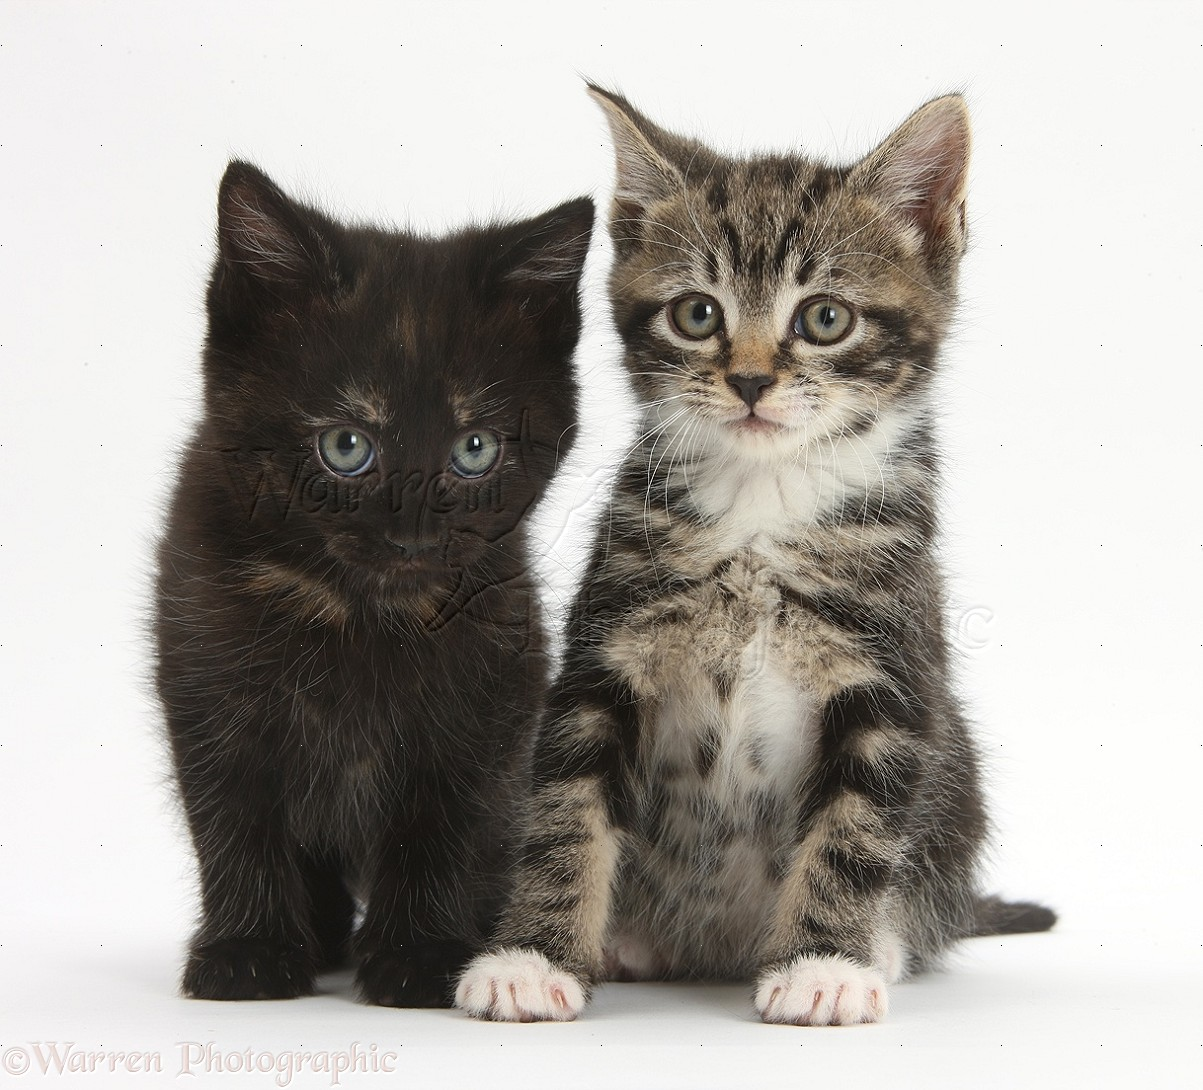 Wp29139 tabby and black kittens